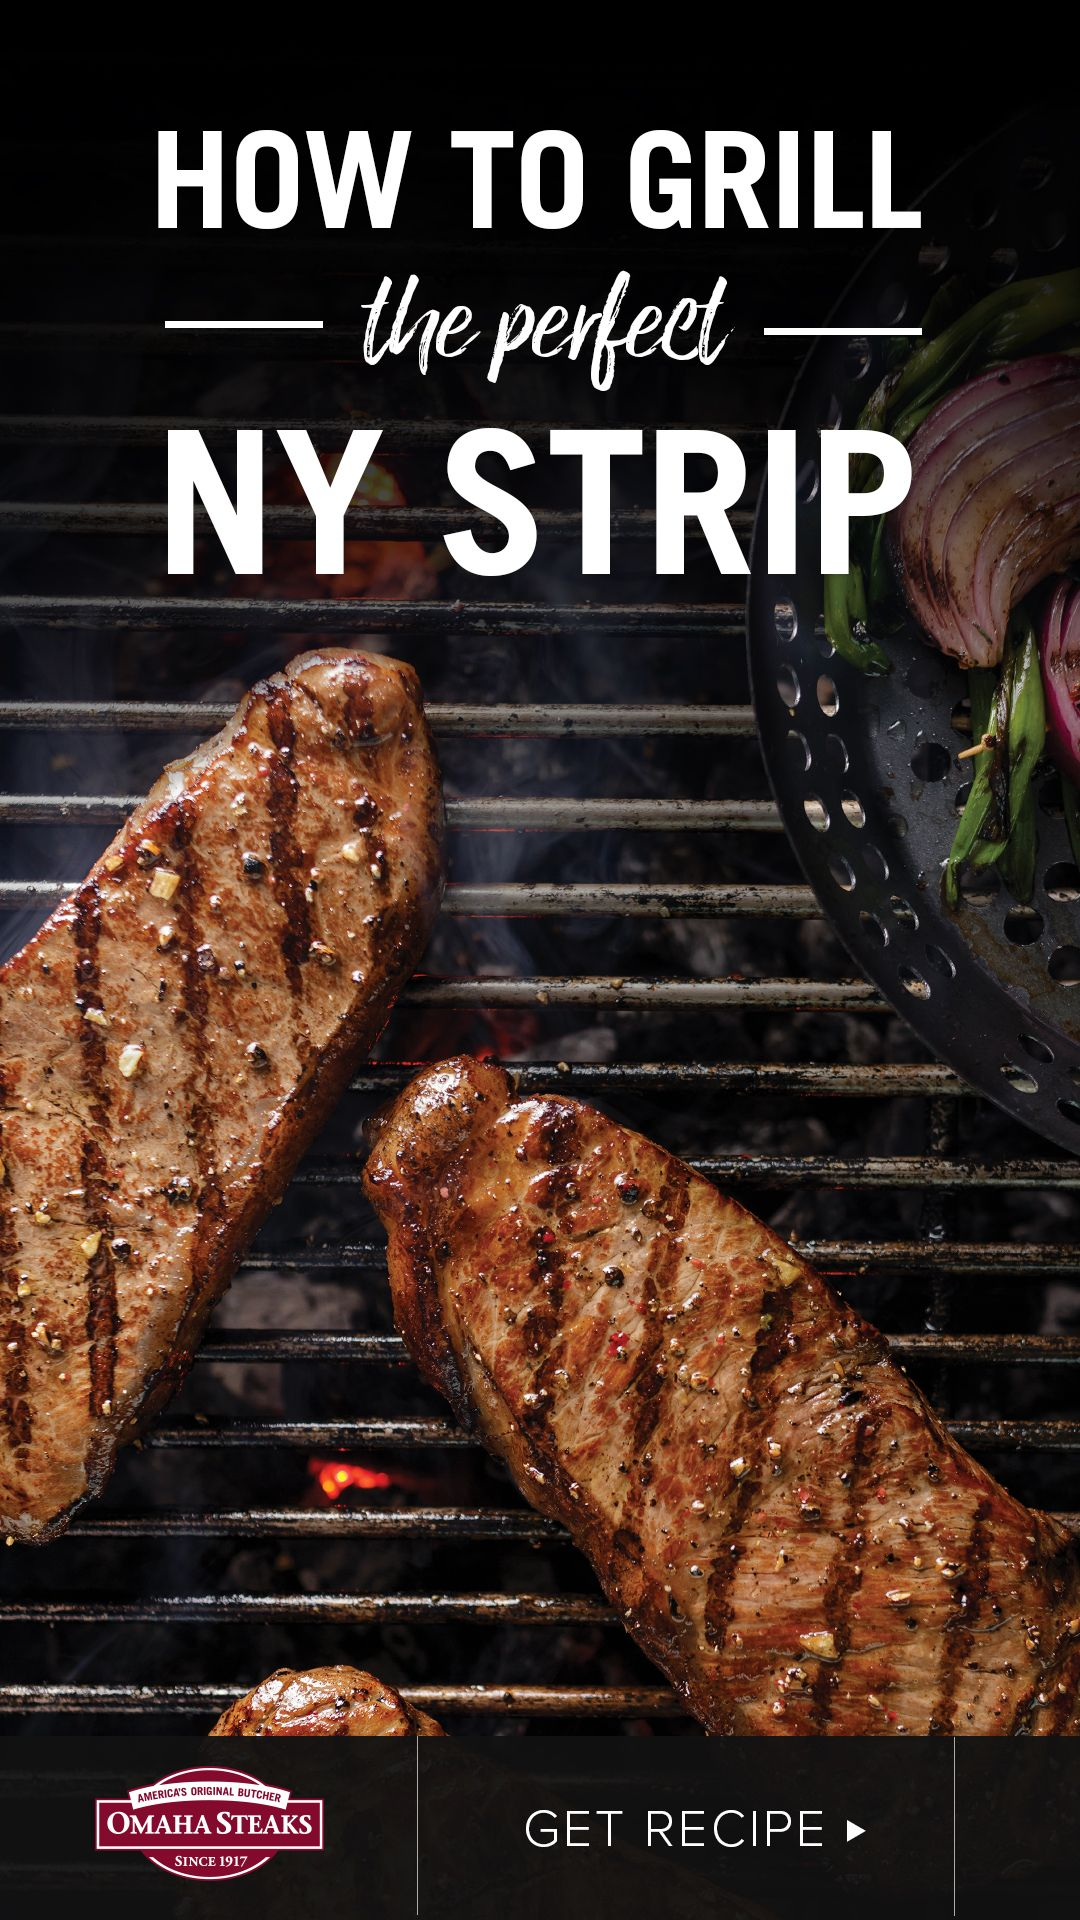 How To Grill The Perfect New York Strip Steak Omaha Steaks Recipe In 2020 Ny Strip Steak Recipes Ny Strip Steak Best New York Strip Steak Recipe